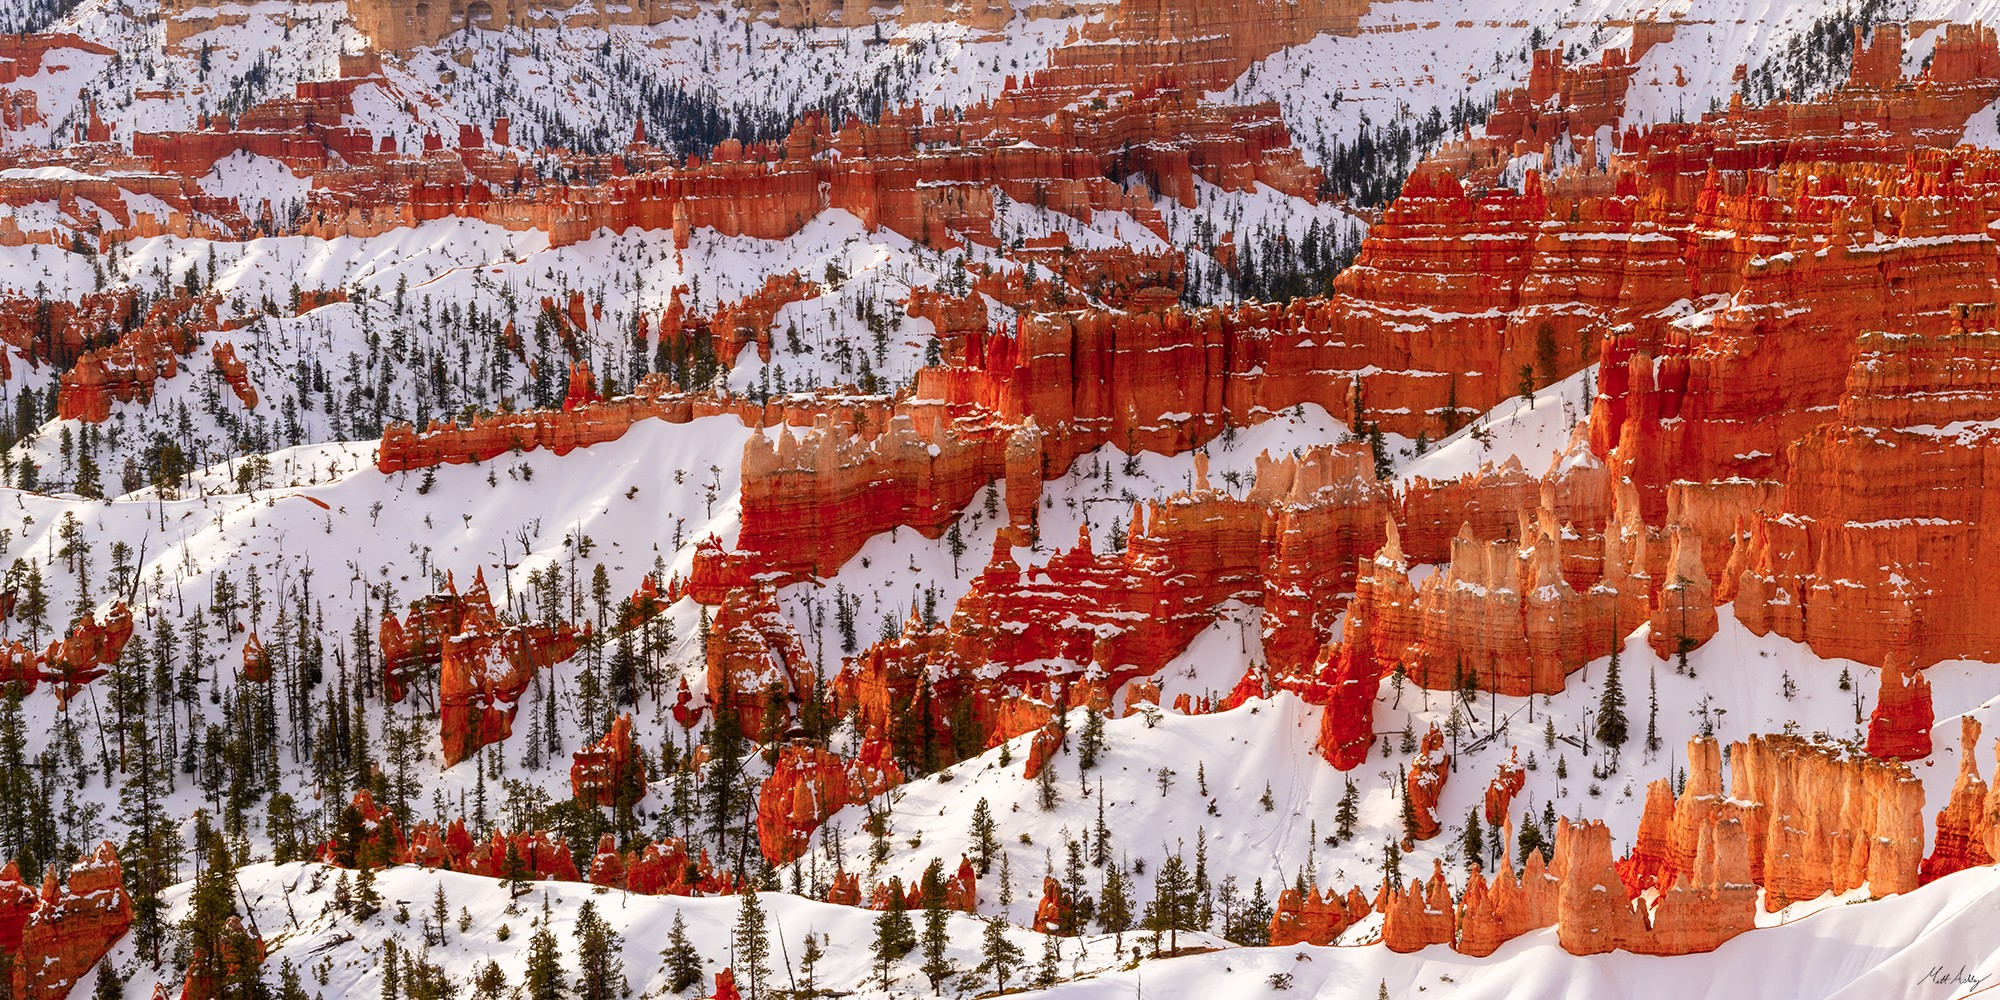 Overlook of the hoodoos in Bryce Canyon National Park after a snowfall.